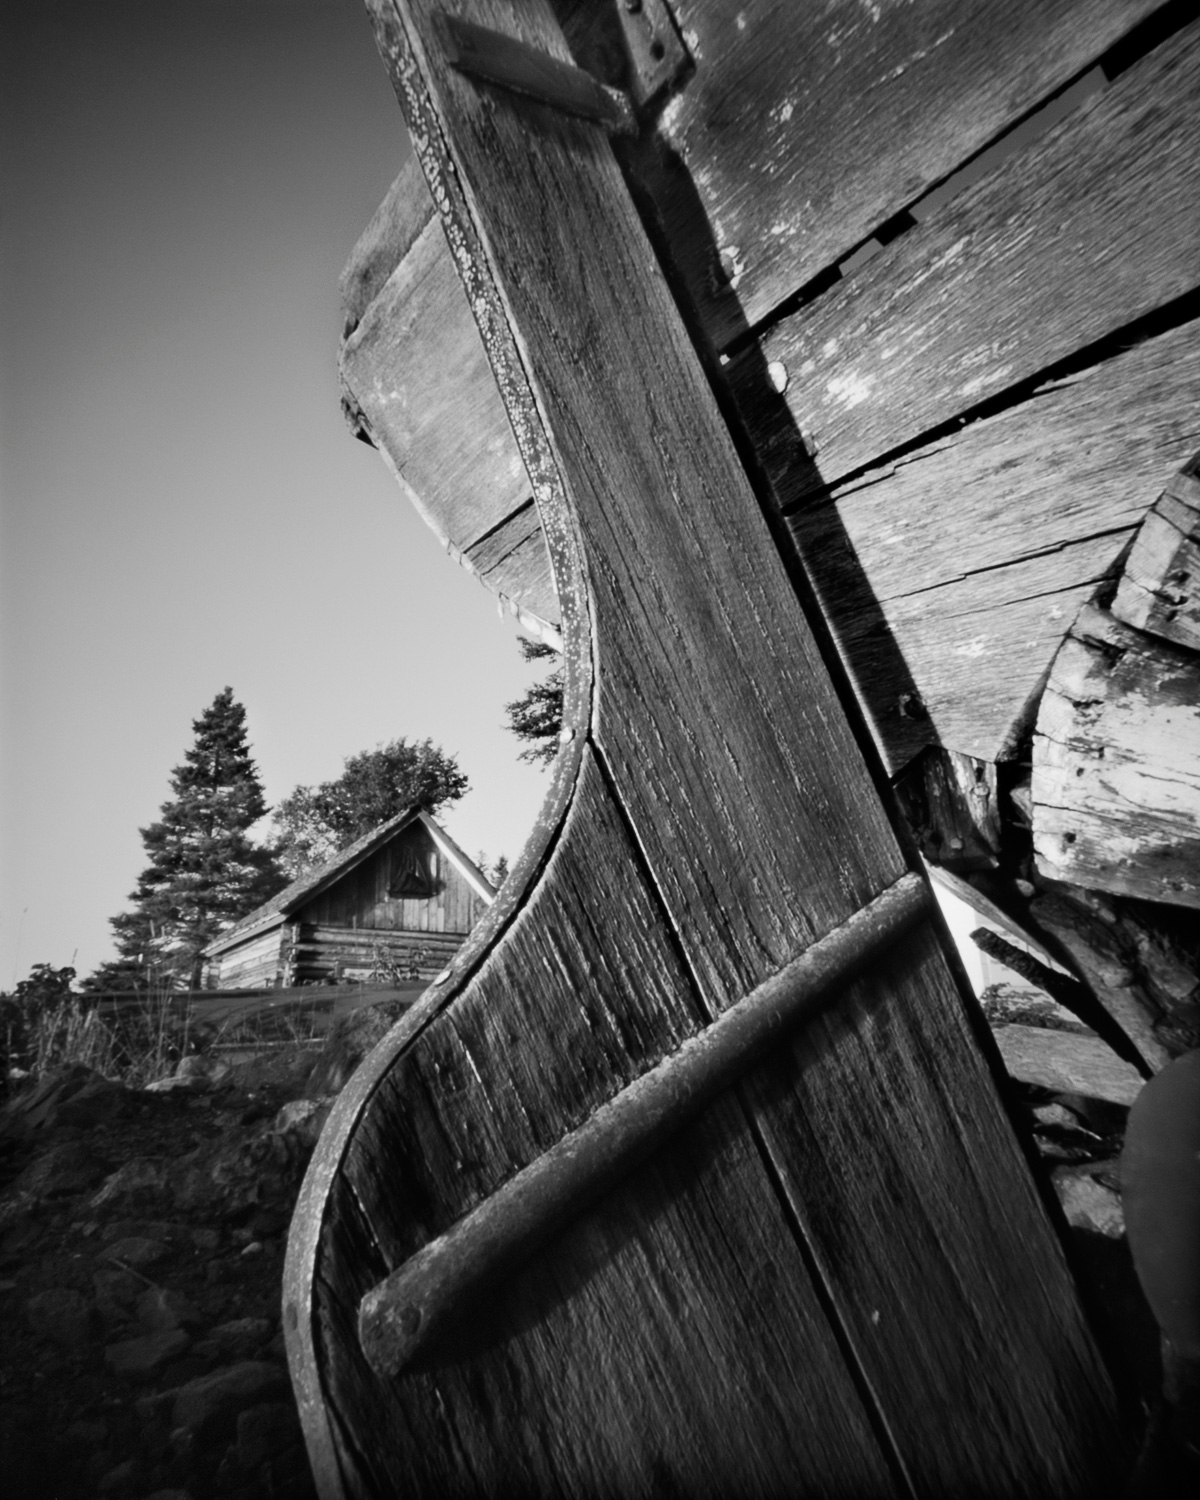 Edisen Fishery Rudder, Isle Royale - pinhole camera photograph